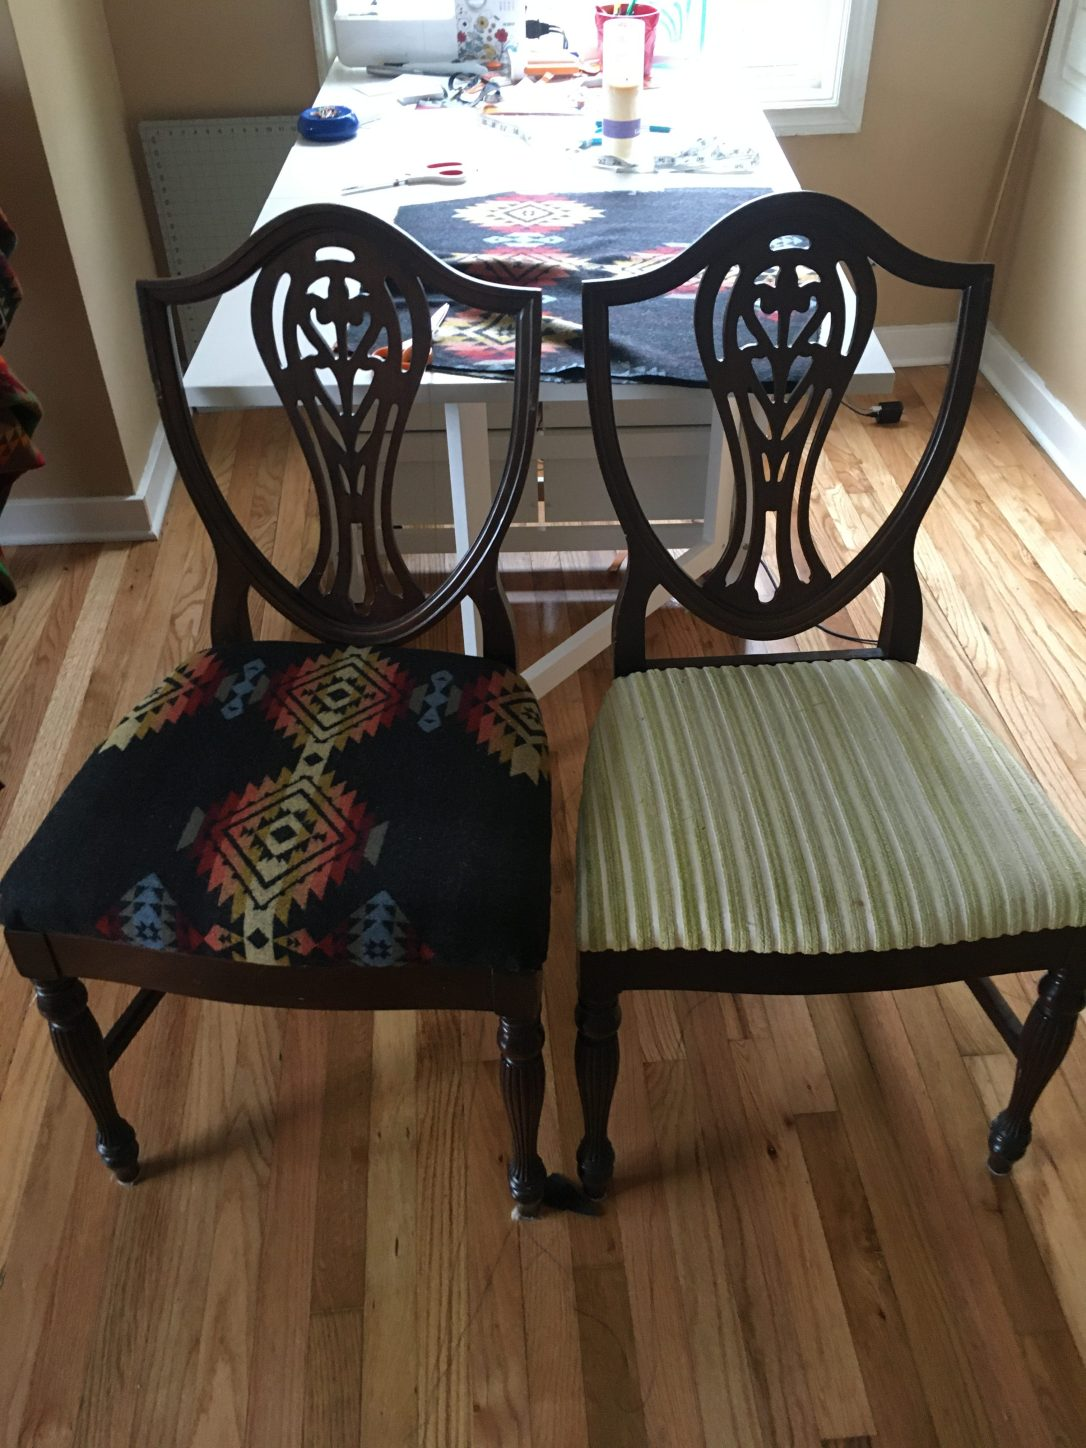 Two traditional wooden dining chairs sit side-by-side in a sewing room. The chair to the right has green striped velvet as its upholstered seat, and the chair to the left has been covered in Pendleton Pueblo Dwelling wool fabric.